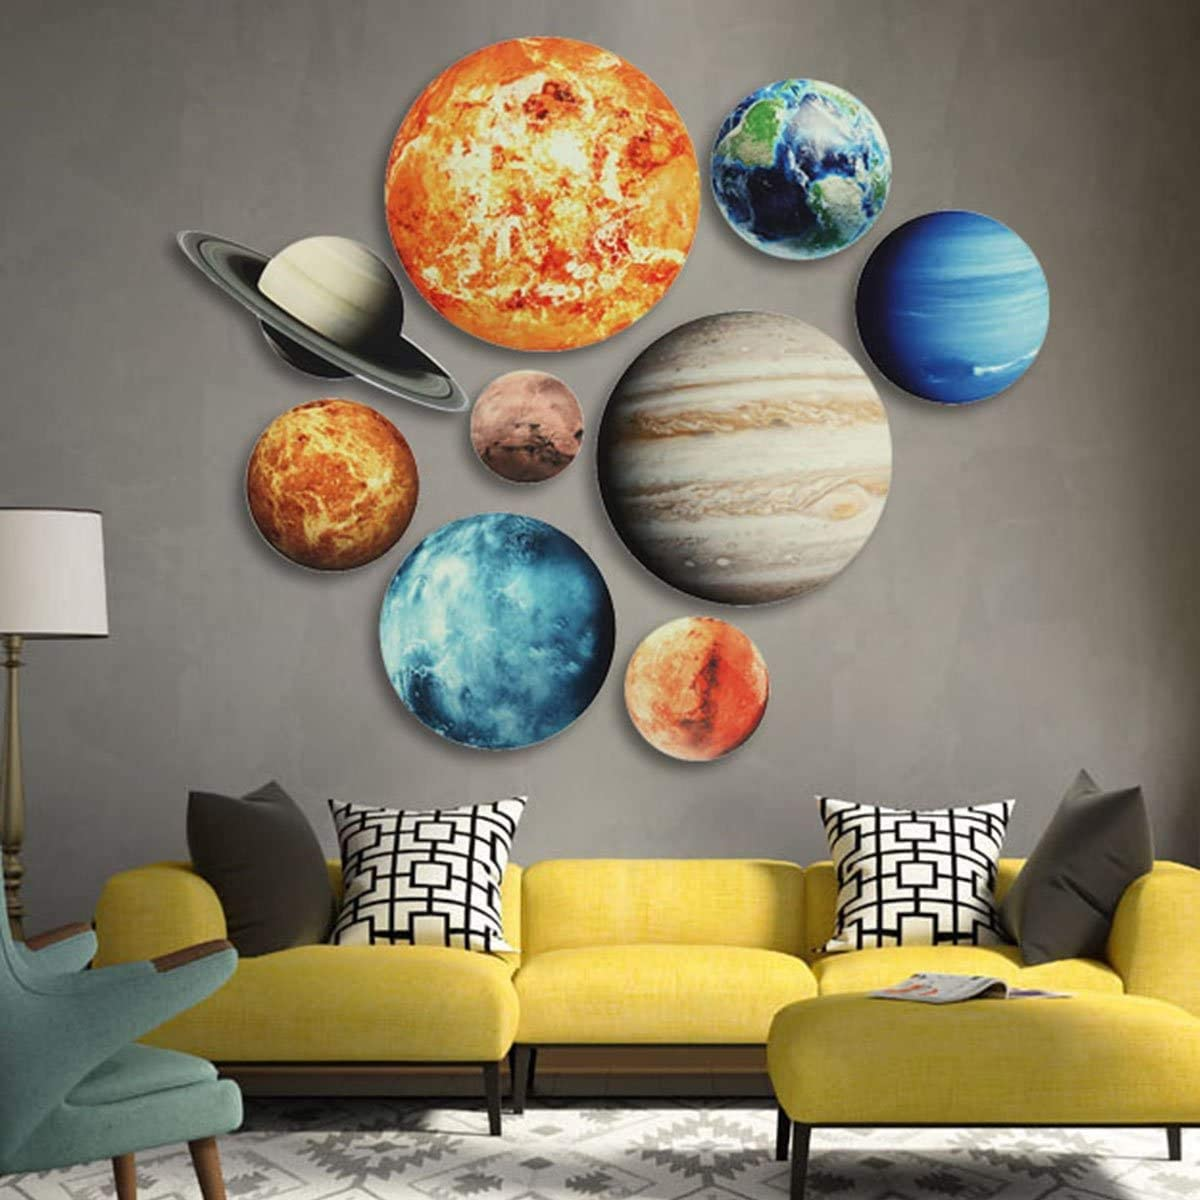 Glow in The Dark Stars for Ceiling, Gayrrnel 10 Glowing Ceiling Decals Solar System - 3D Space Decor Wall Stickers for Home and Room Decoration - Glow in The Dark Stickers Planets Kids Room Decor